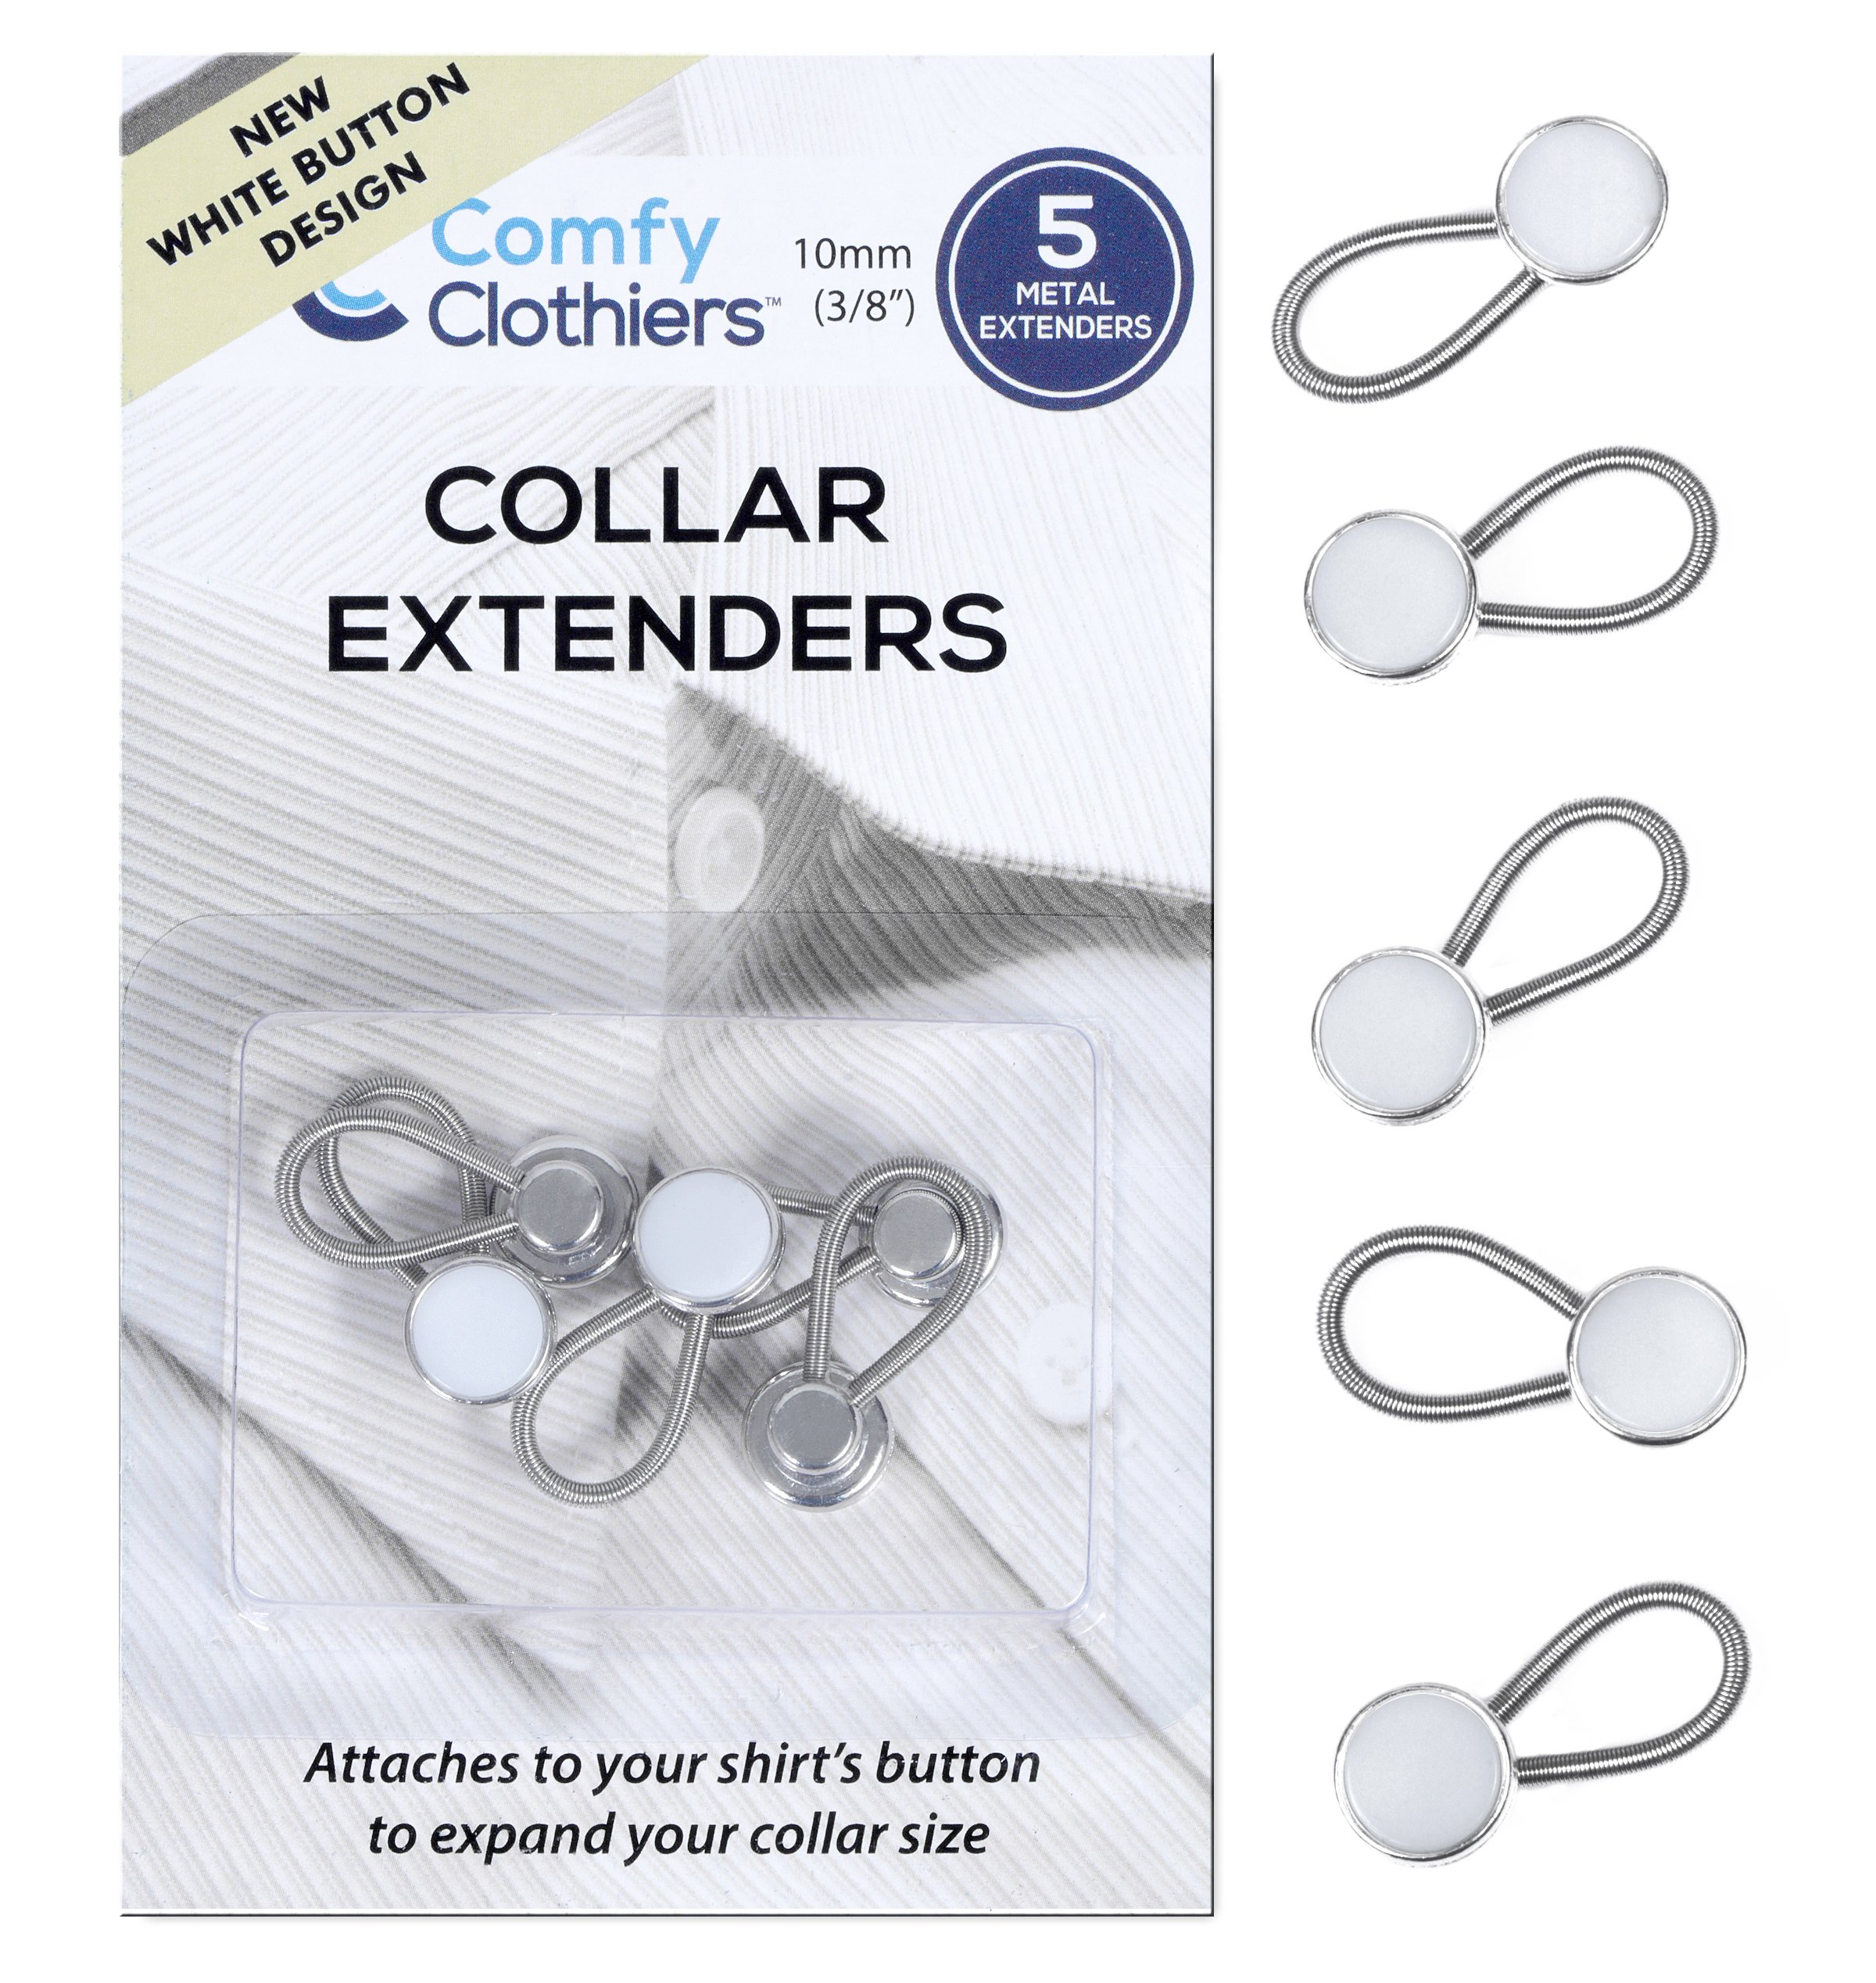 Comfy Clothiers 5-Pack White Collar Extenders - Dress Shirt Button Extender